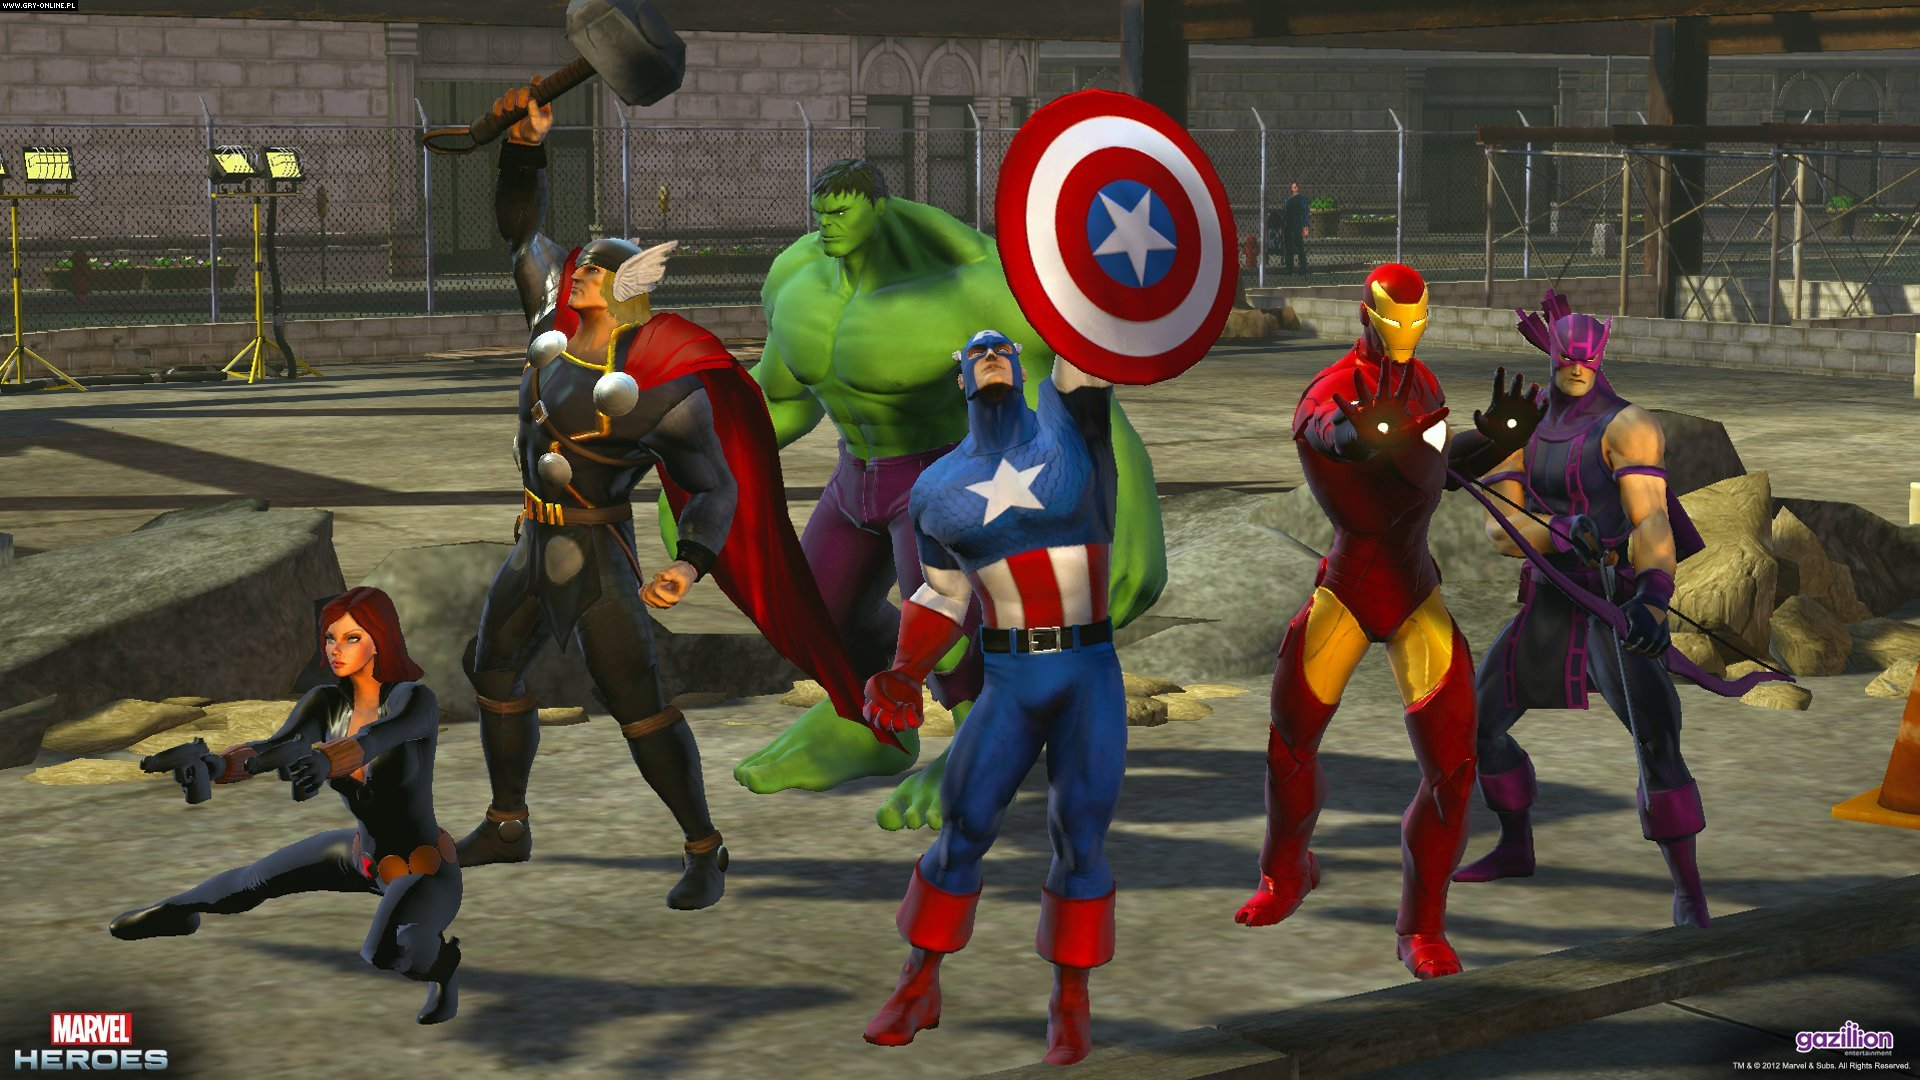 Marvel Heroes Omega - screenshots gallery - screenshot 65